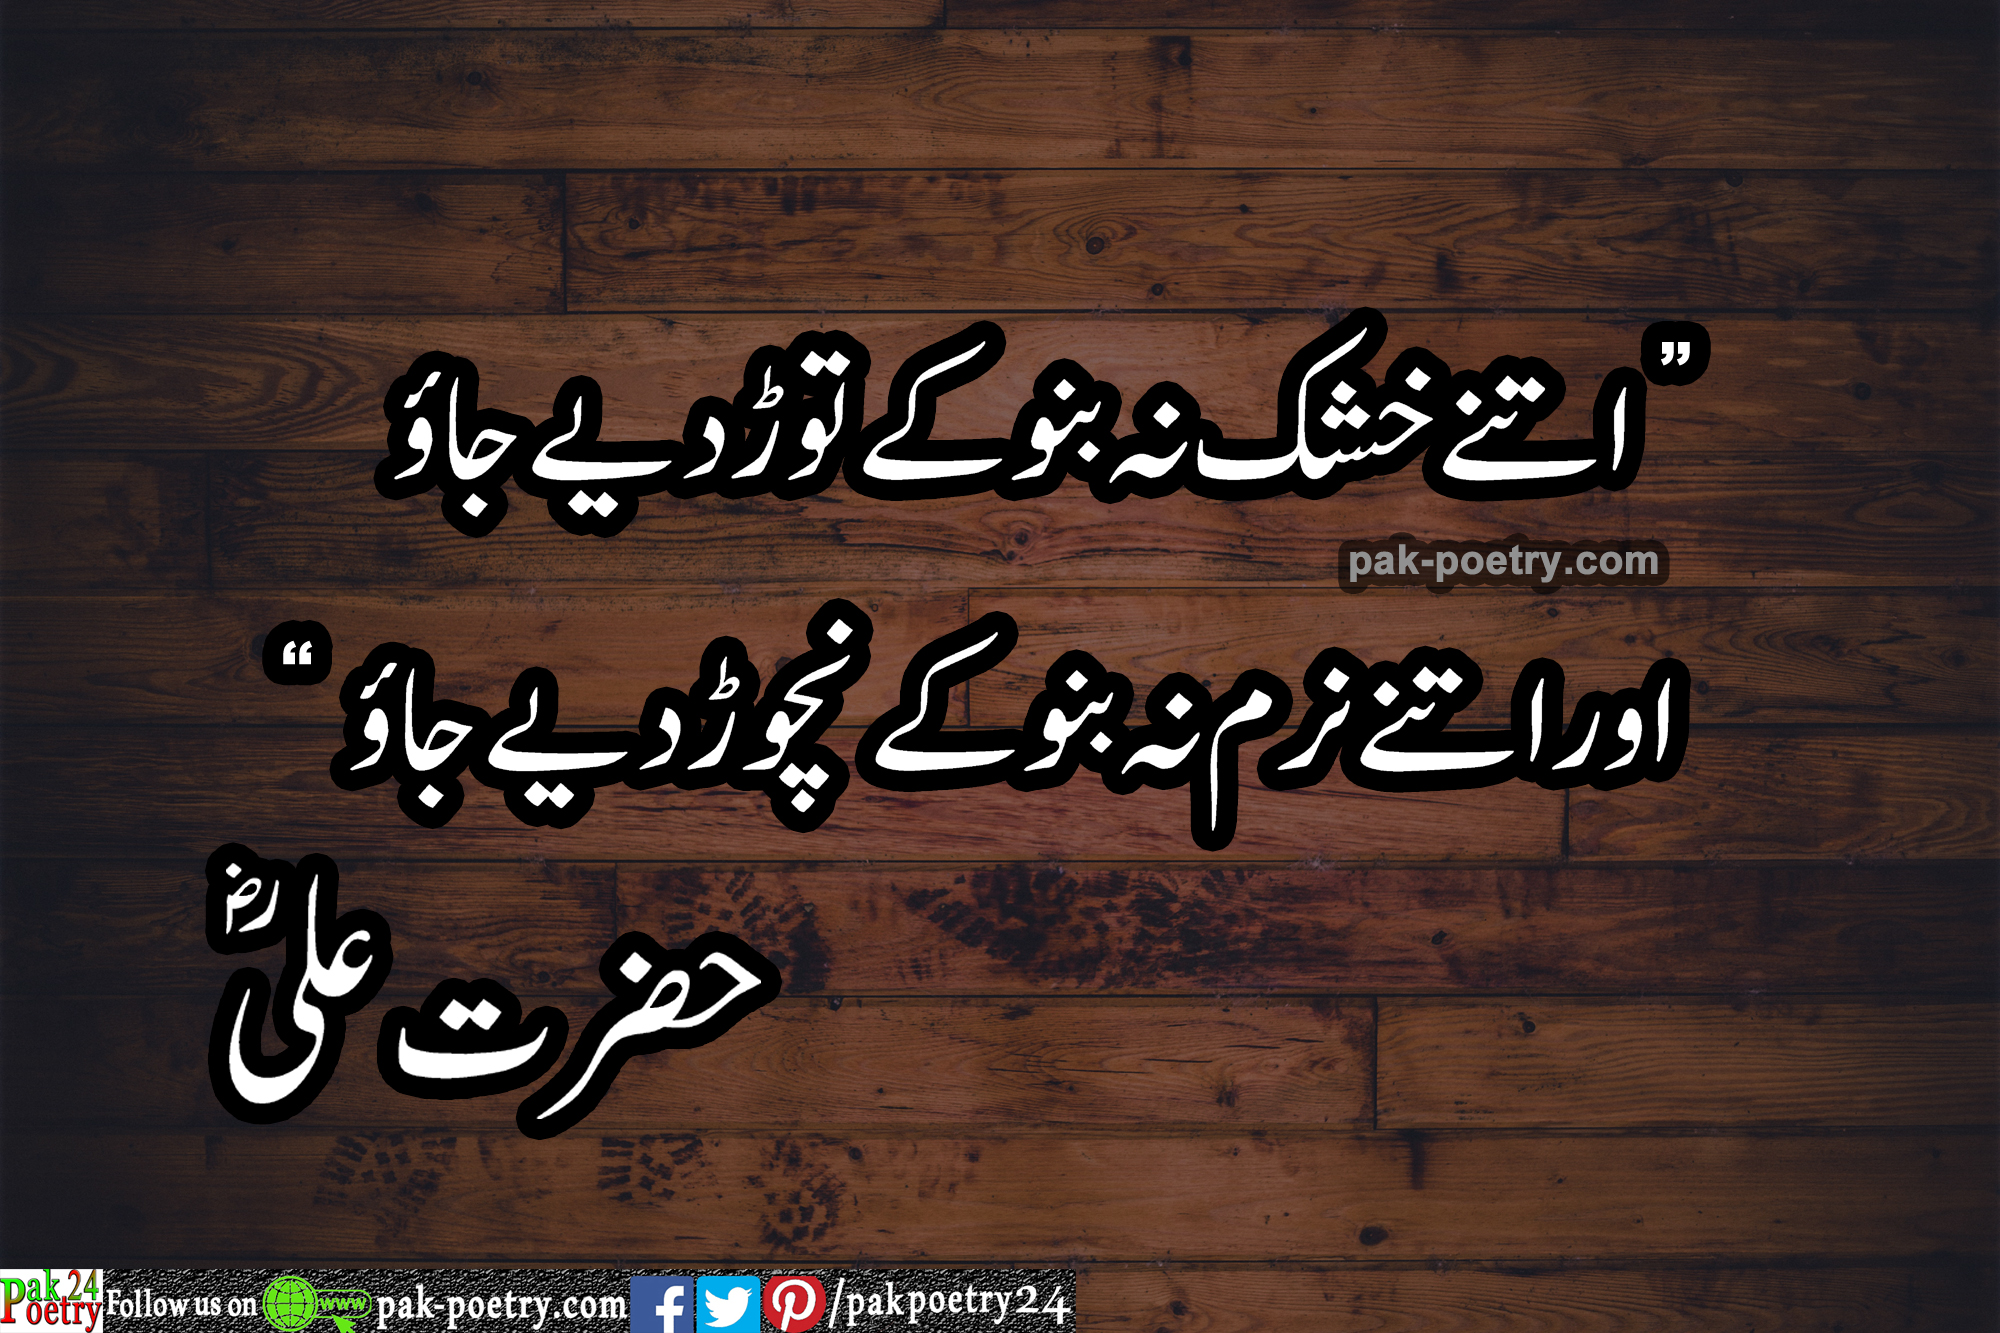 Hazrat ali quotes, hazrat ali quotes in urdu, hazrat ali poetry, hazrat ali quotes in urdu text, poetry hazrat ali, hazrat ali, hazrat ali quotes urdu, Islamic poetry, Islamic images, Islamic poetry in urdu, Poetry Islamic, urdu Islamic poetry, allah Islamic poetry, Islamic poetry pics, Islamic poetry urdu, Islamic photos, dua Islamic poetry,